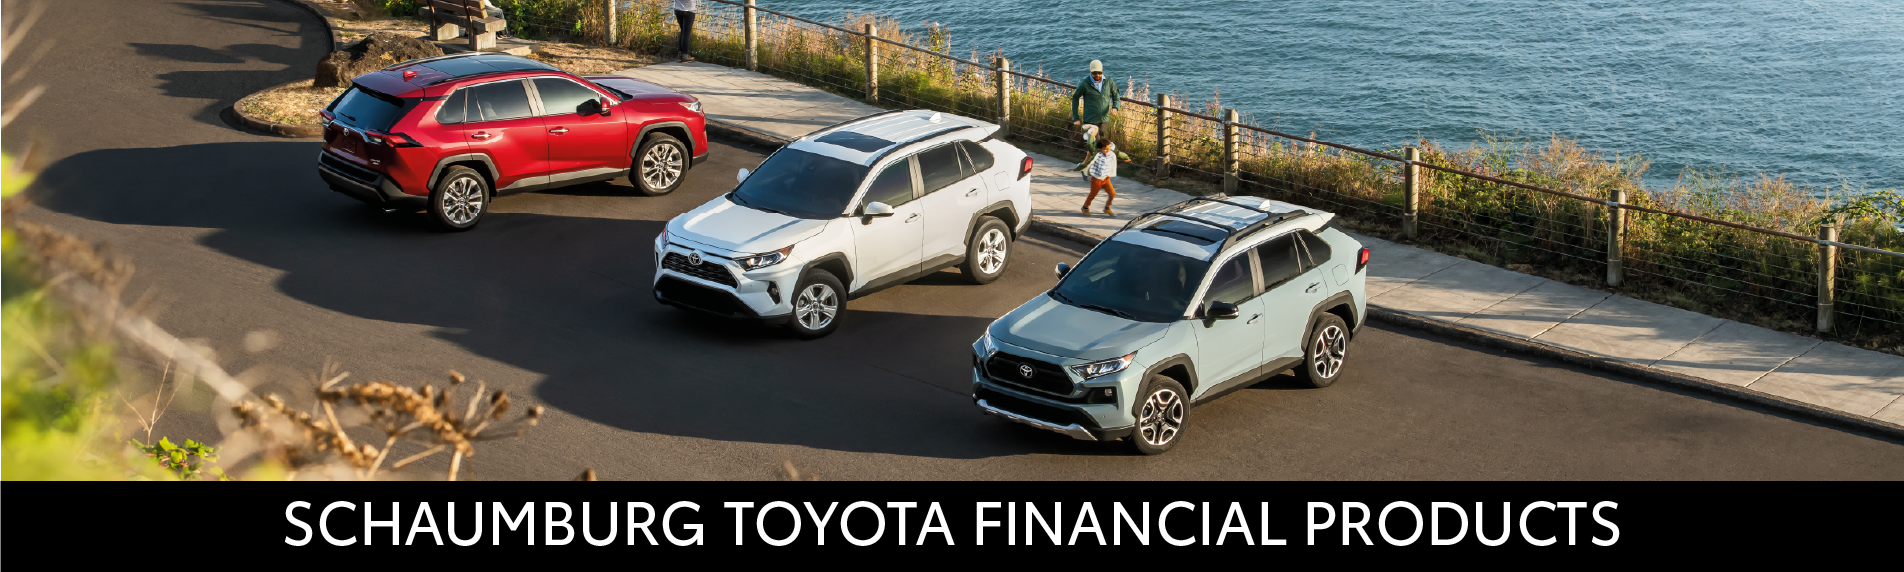 Schaumburg Toyota Financial Products